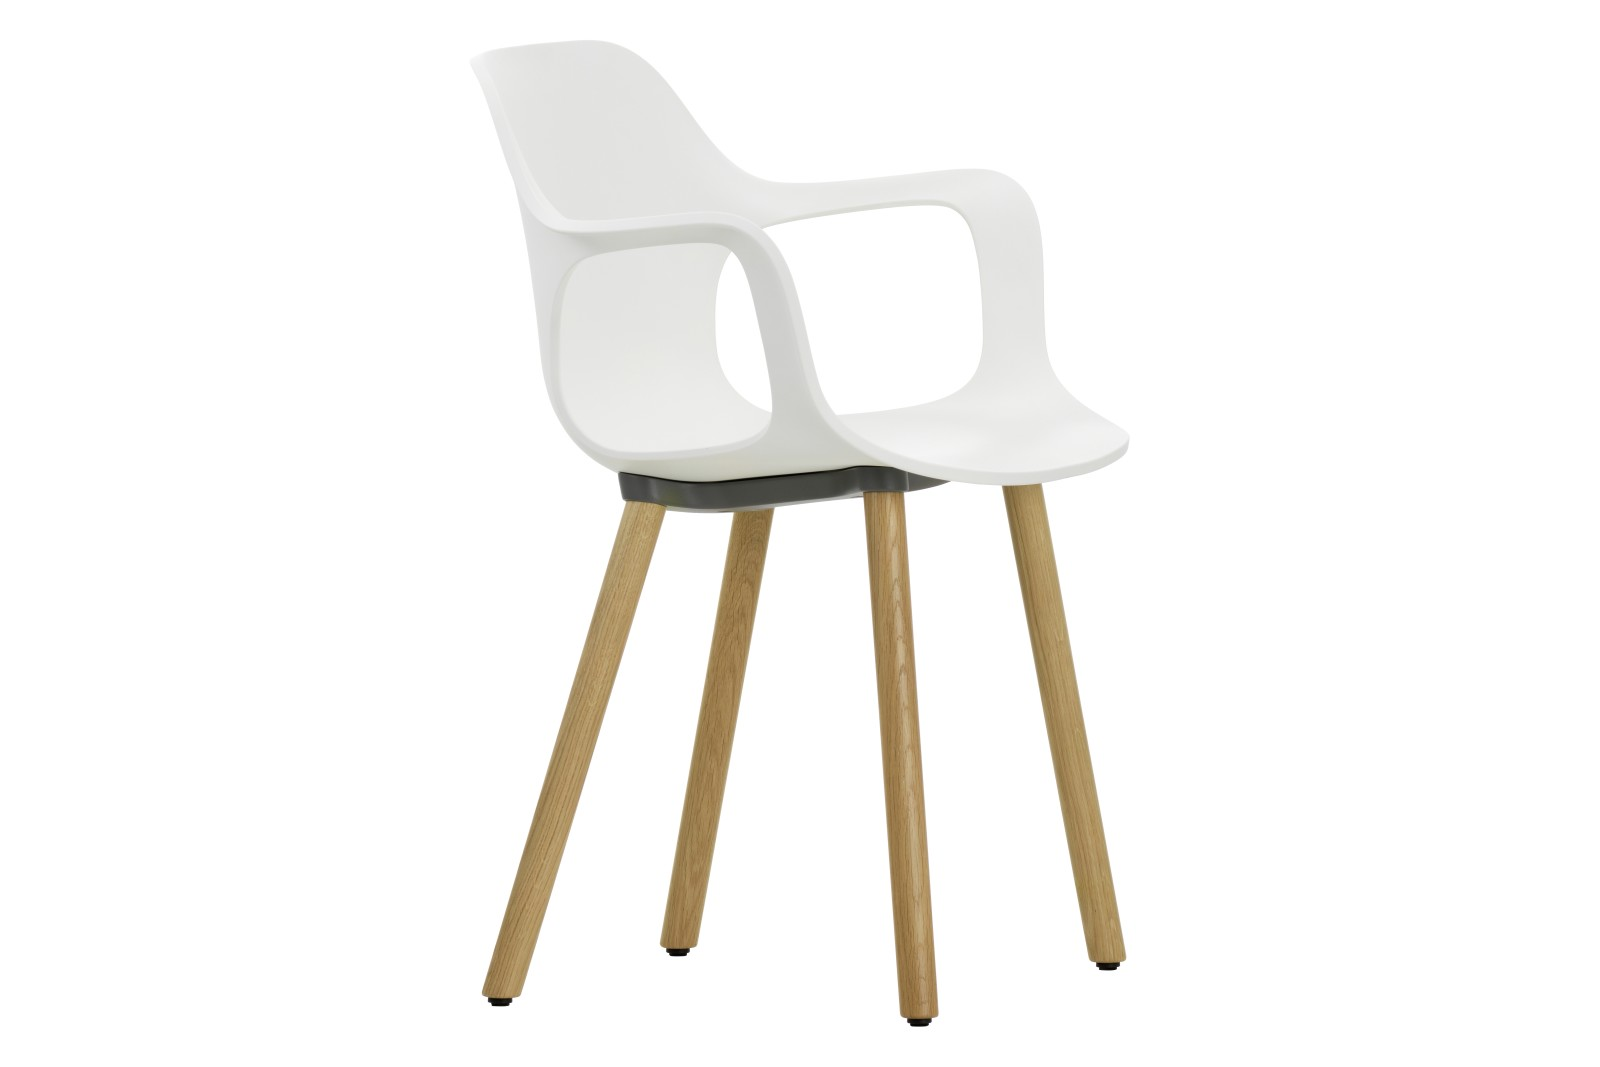 HAL Wood Base Armchair 04 white, 04 glides for carpet, Natural oak with protective varnish